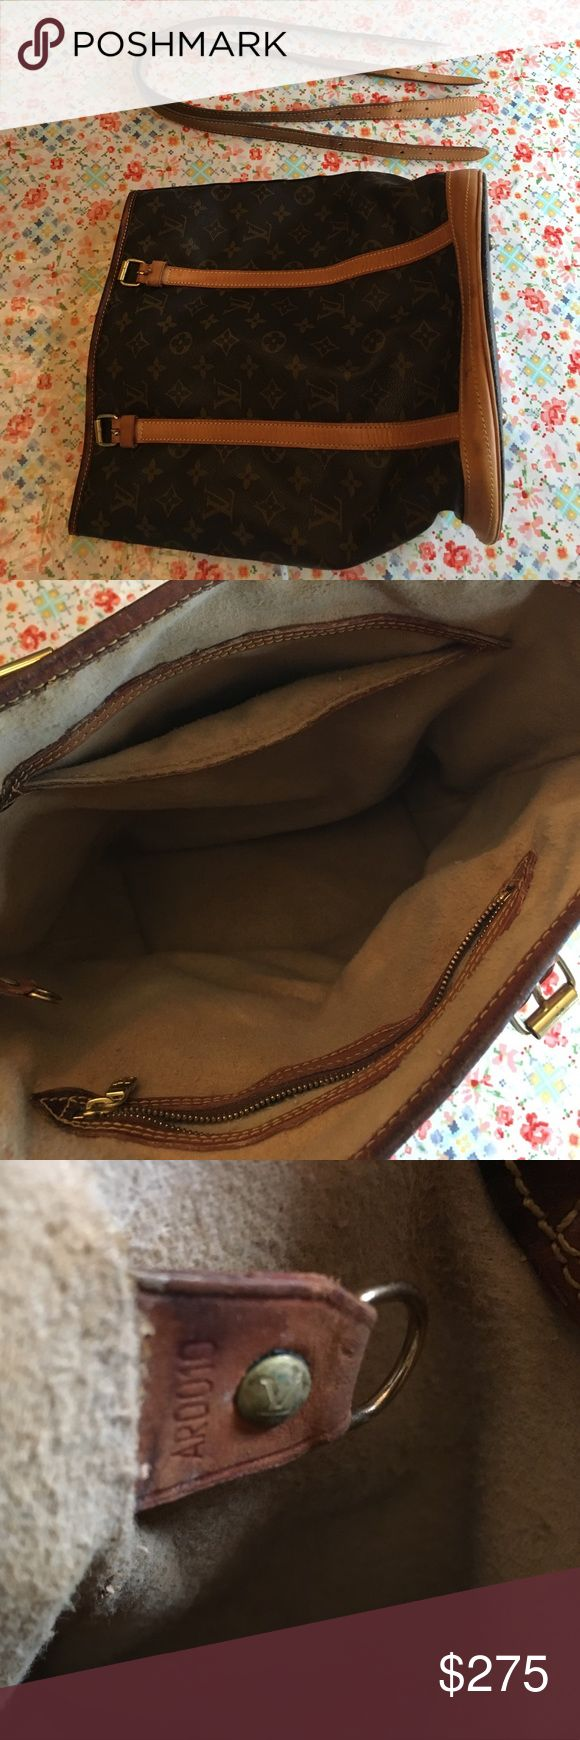 [Louis Vuitton] Authentic Bucket GM Bag Purse DIY gone awry. Got the sticky liner out but nuked the top trim. It is dark and crunchy and will need to be replaced in the long run. Outside is gorgeous with honey patina. Handles are slightly darker and in great shape. Please ask questions prior. I'm heart broken and can't look at it anymore.   LV Authentic Trade Wish List: Speedy Nano/mini or 30 Saint Cloud Samaur 30/35 or other Cross body Anything Graffiti   Trade Virgin: You must have a…